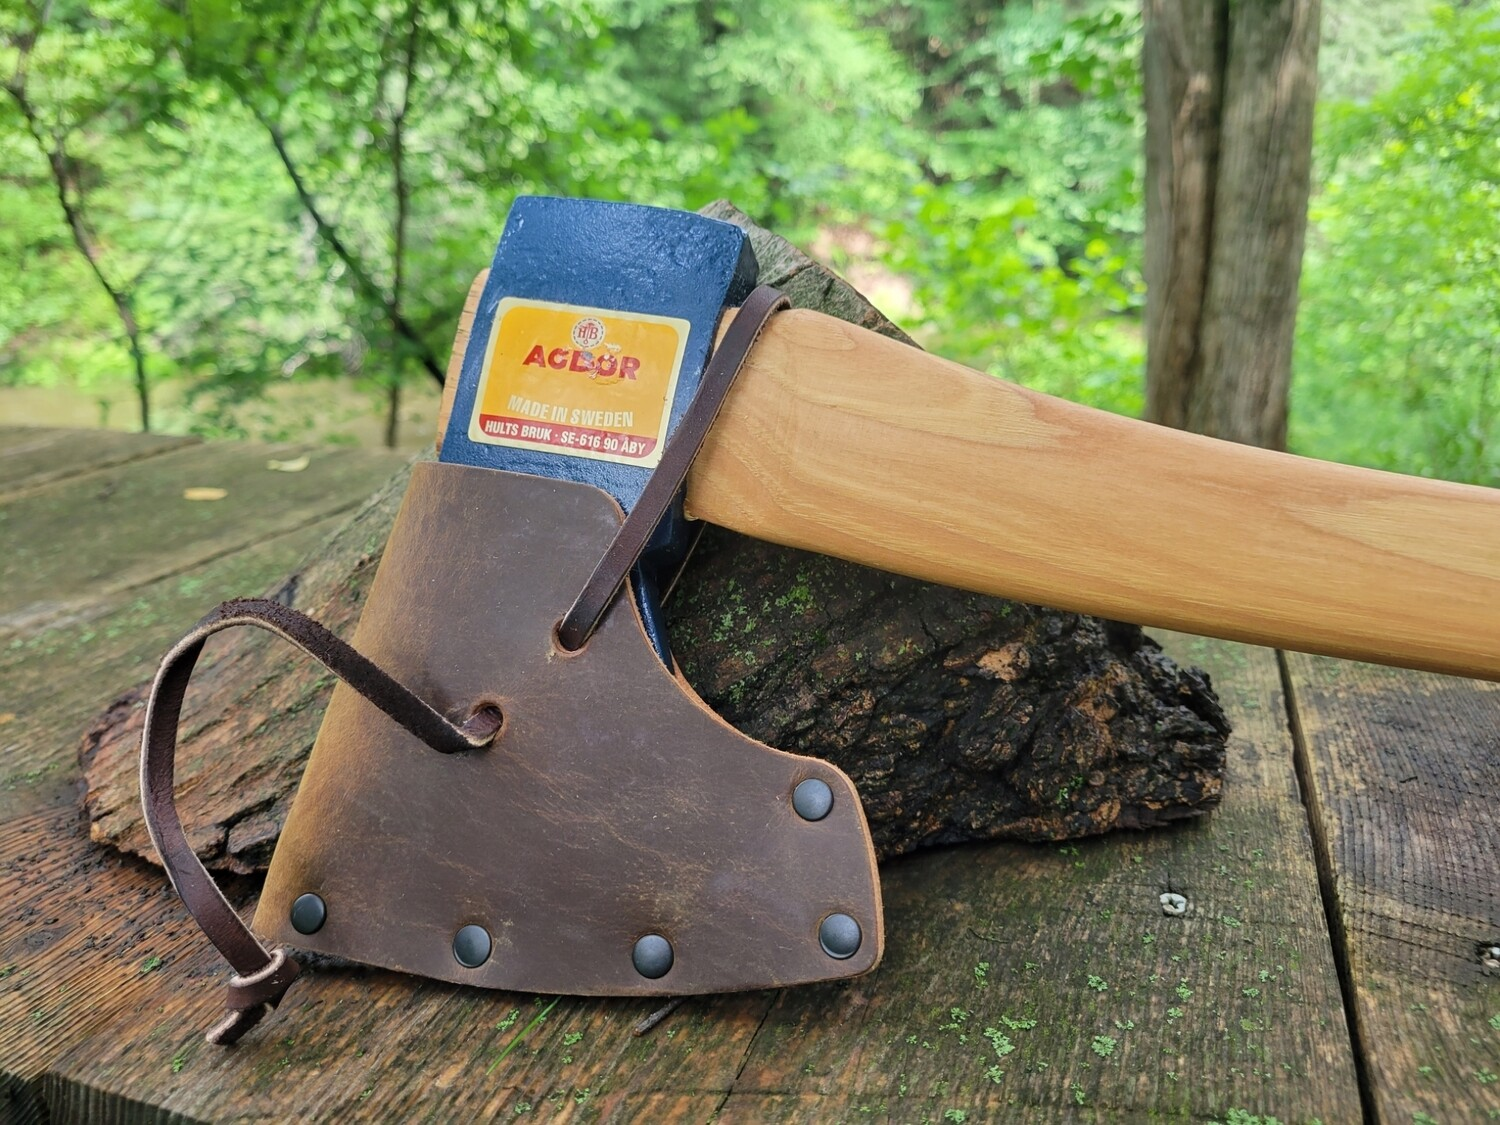 Hults Bruk Agdor 28 inch Montreal Pattern Felling Axe